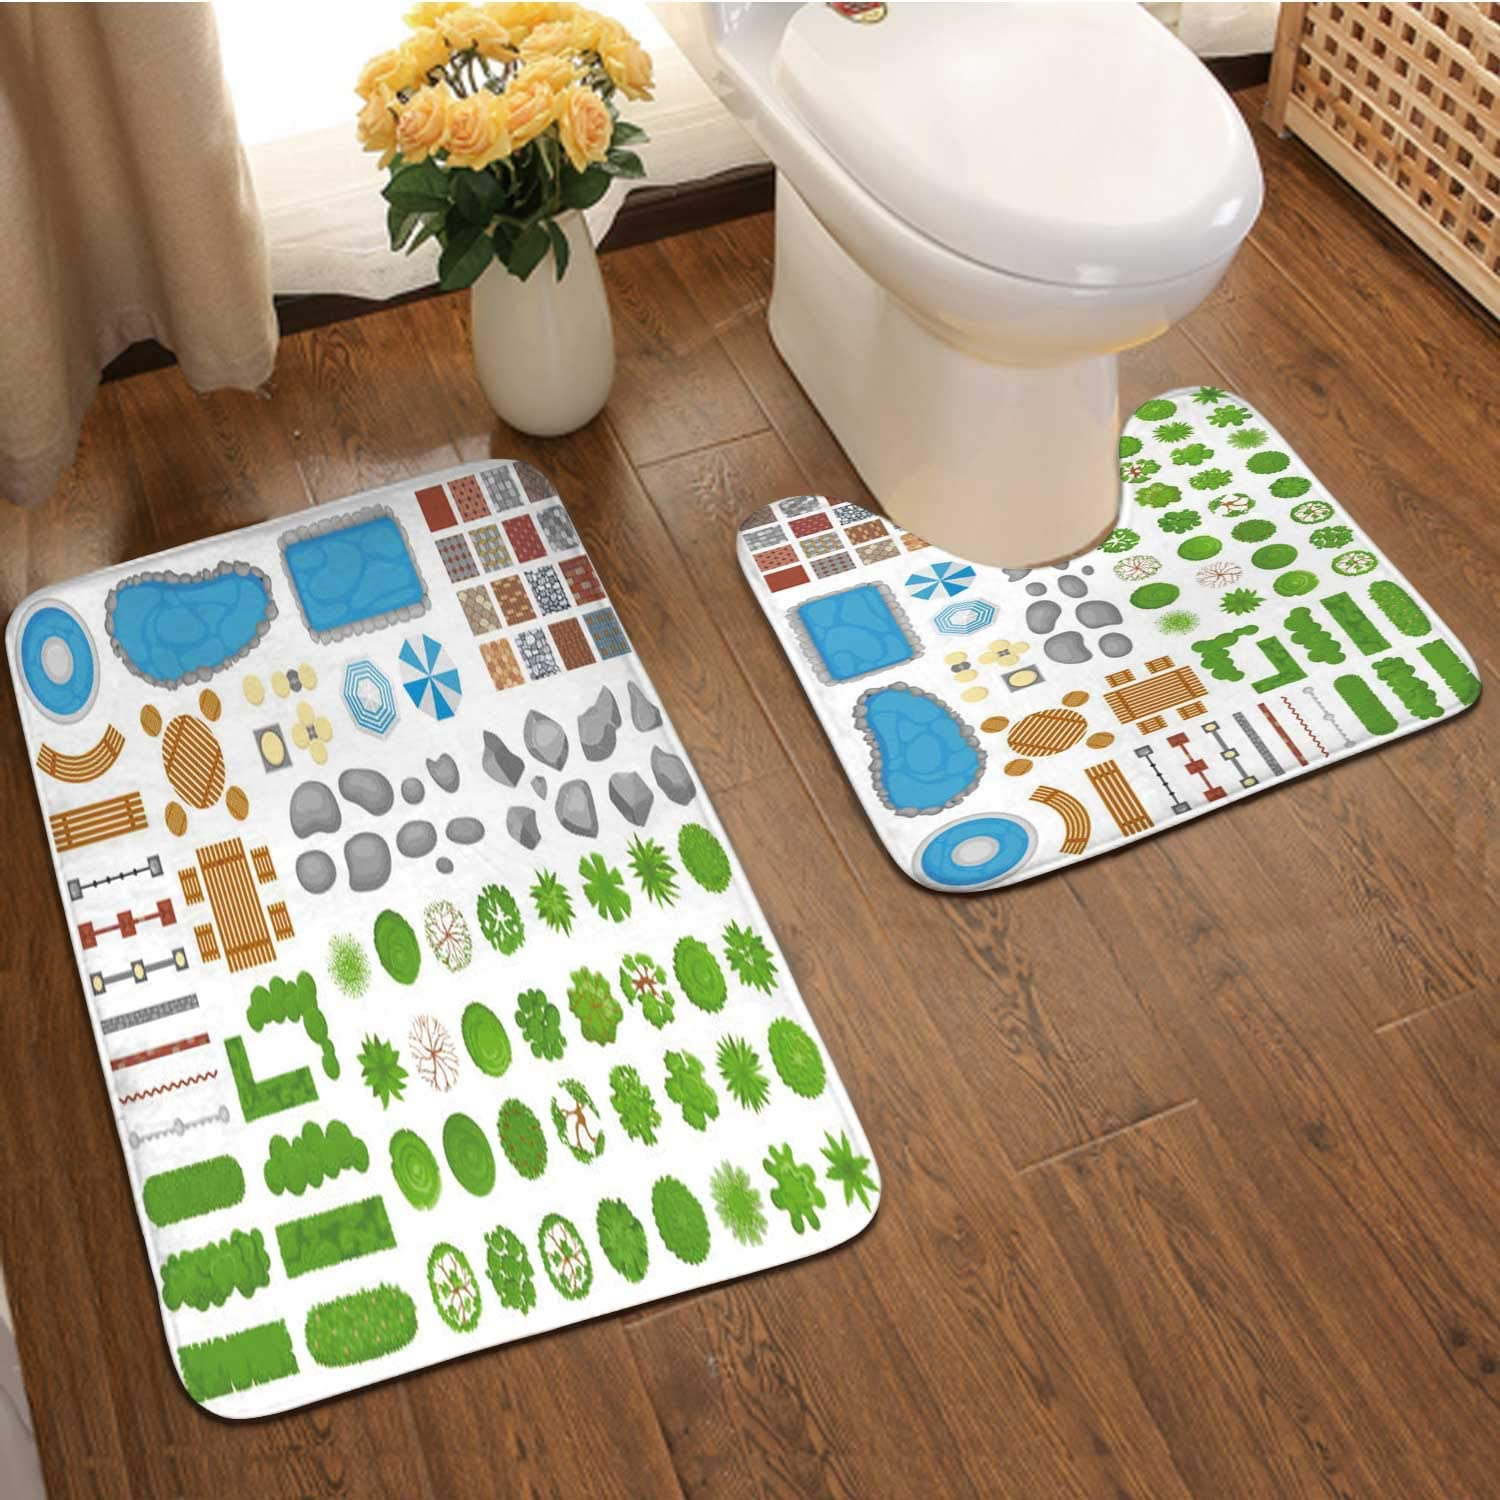 Top View Park Items.Garden walkwa,2 Pieces Bathroom Bath Rugs Set, Soft Flannel U Shaped Toilet Floor mat,Mat for Bathroom Outdoor Relaxing Parks Furniture and Gardens Trees Aerial Isolated-